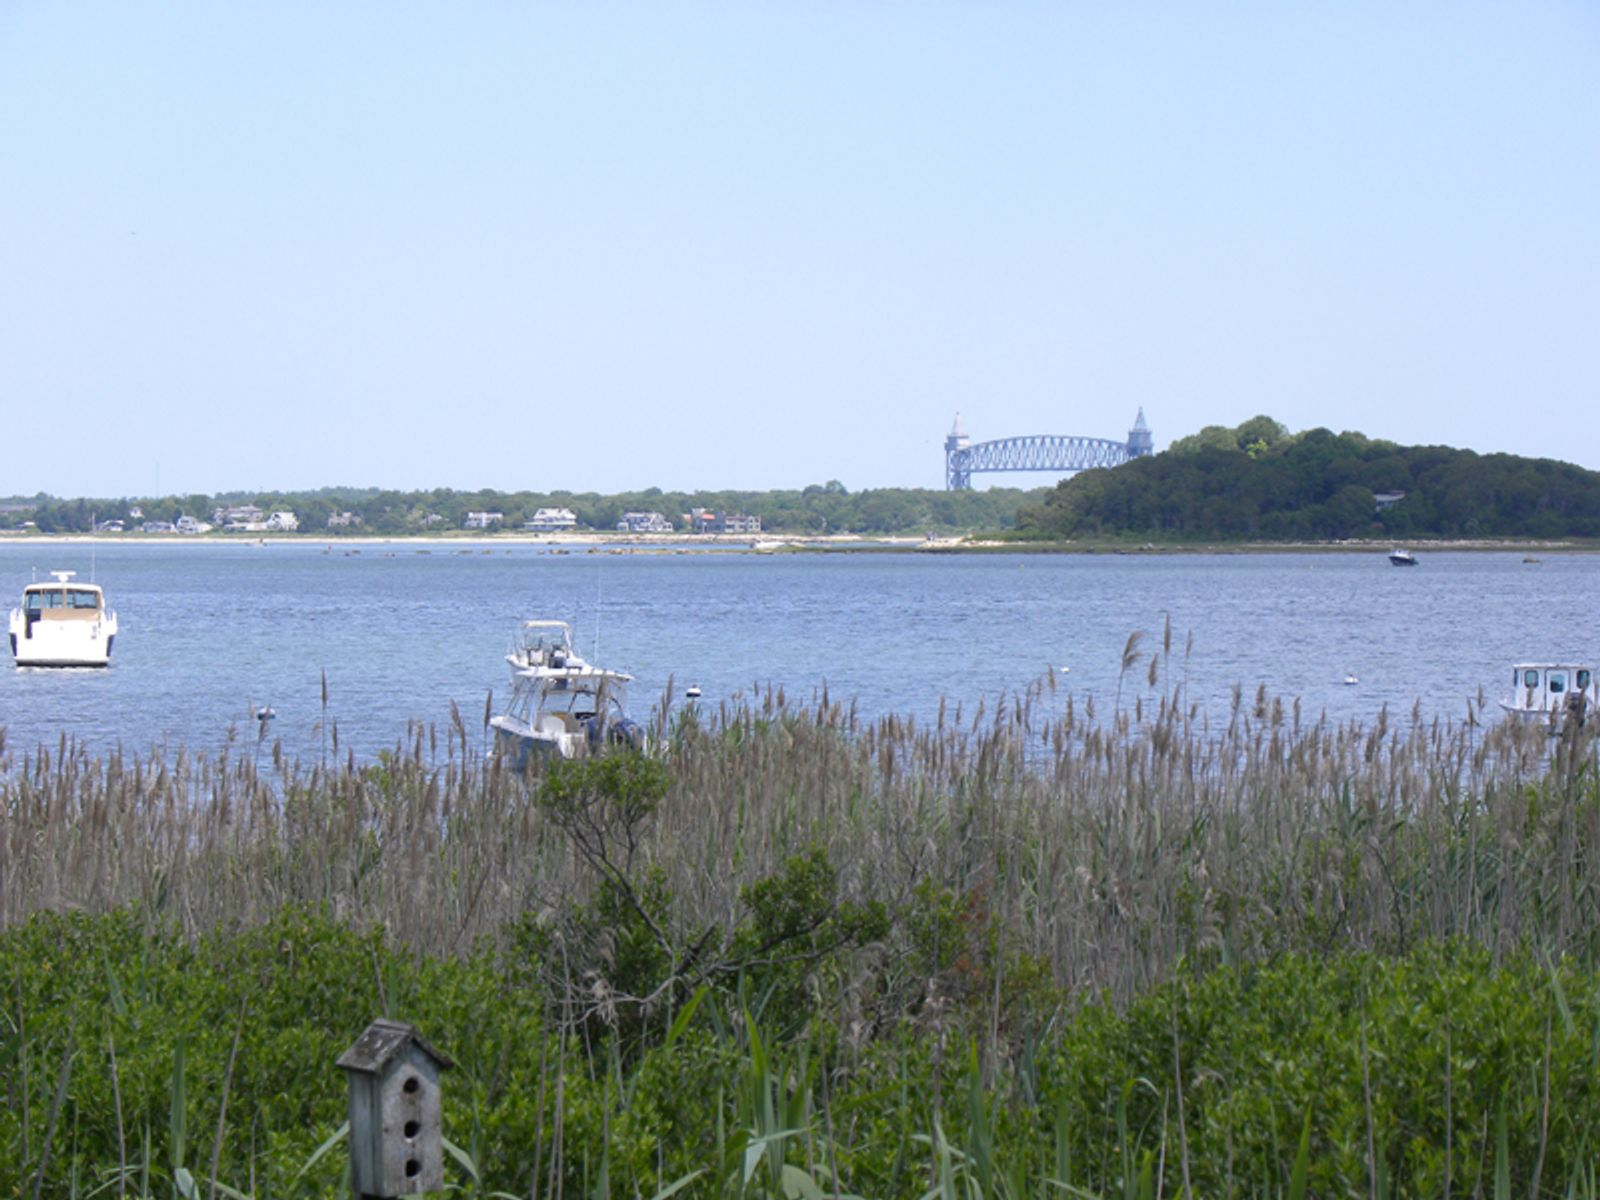 Wings Neck Beachfront, Pocasset MA Single Family Home - Cape Cod Real Estate